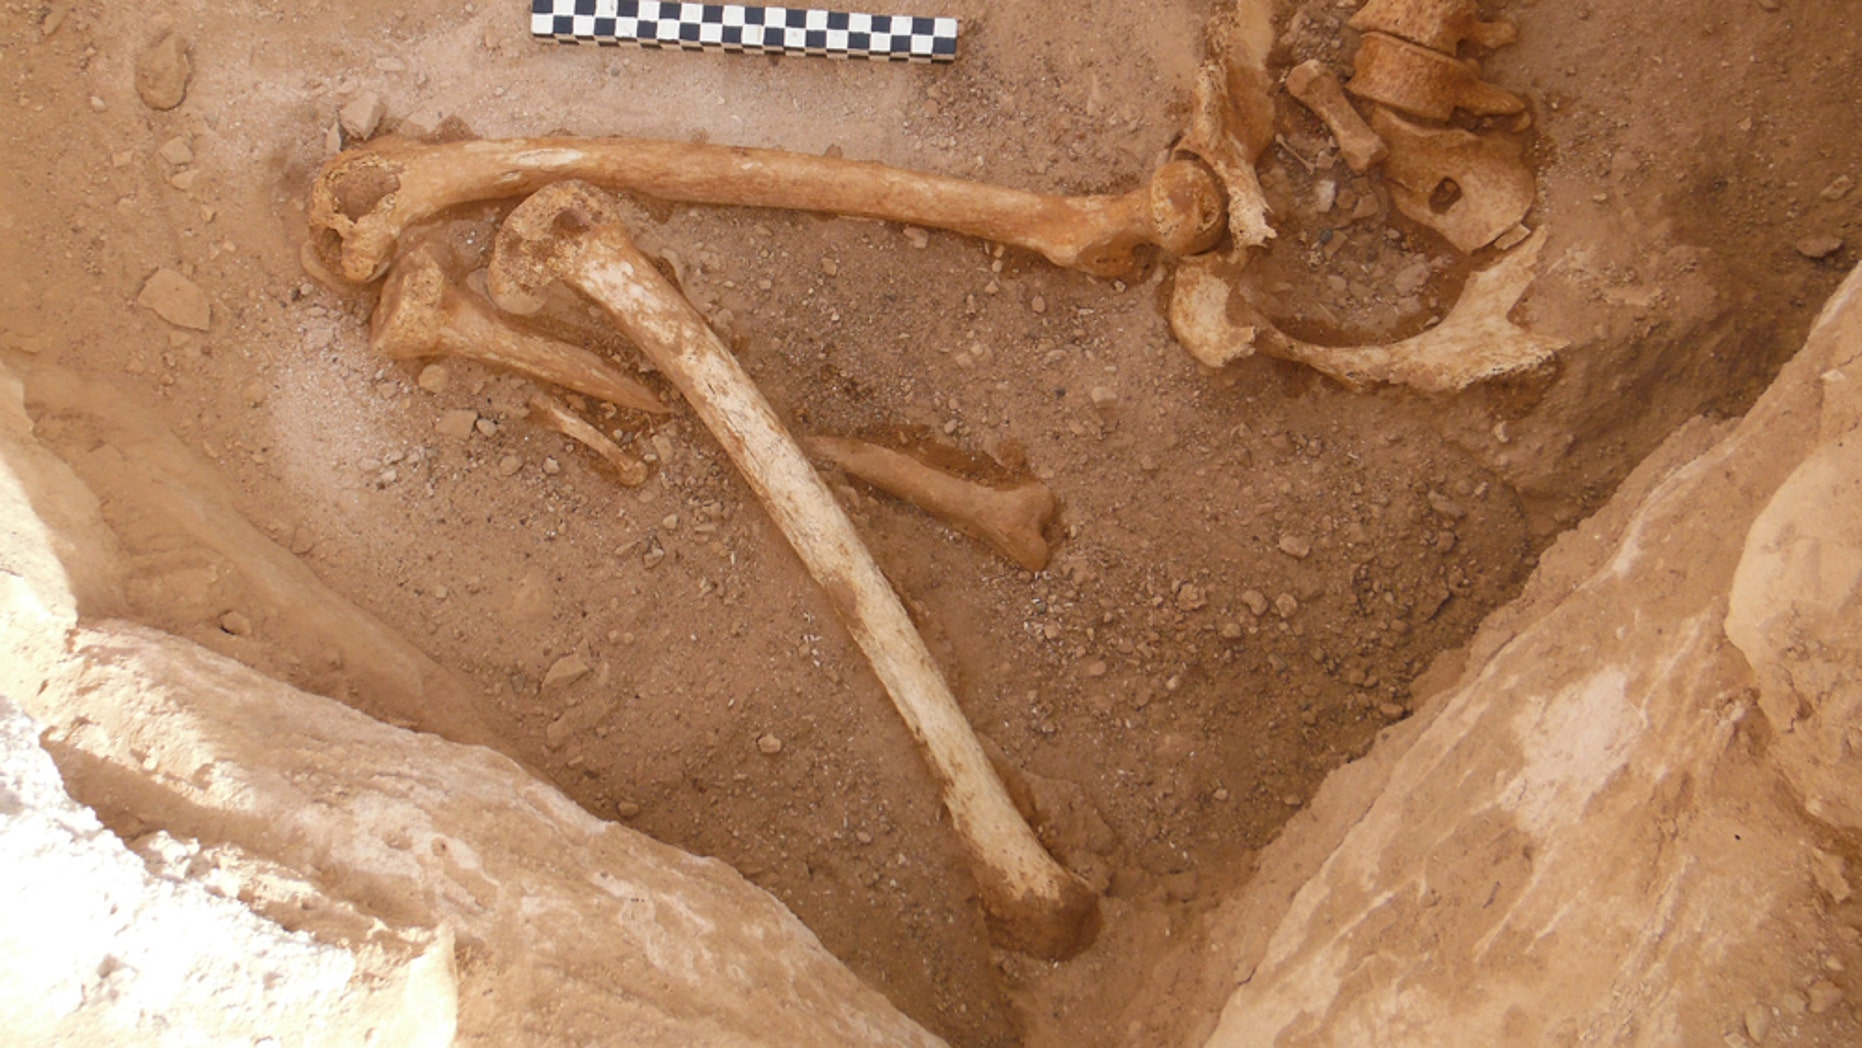 Remains of the pregnant woman's fetus bones in her pelvis can be seen in this photo. She was in her first trimester when she died.